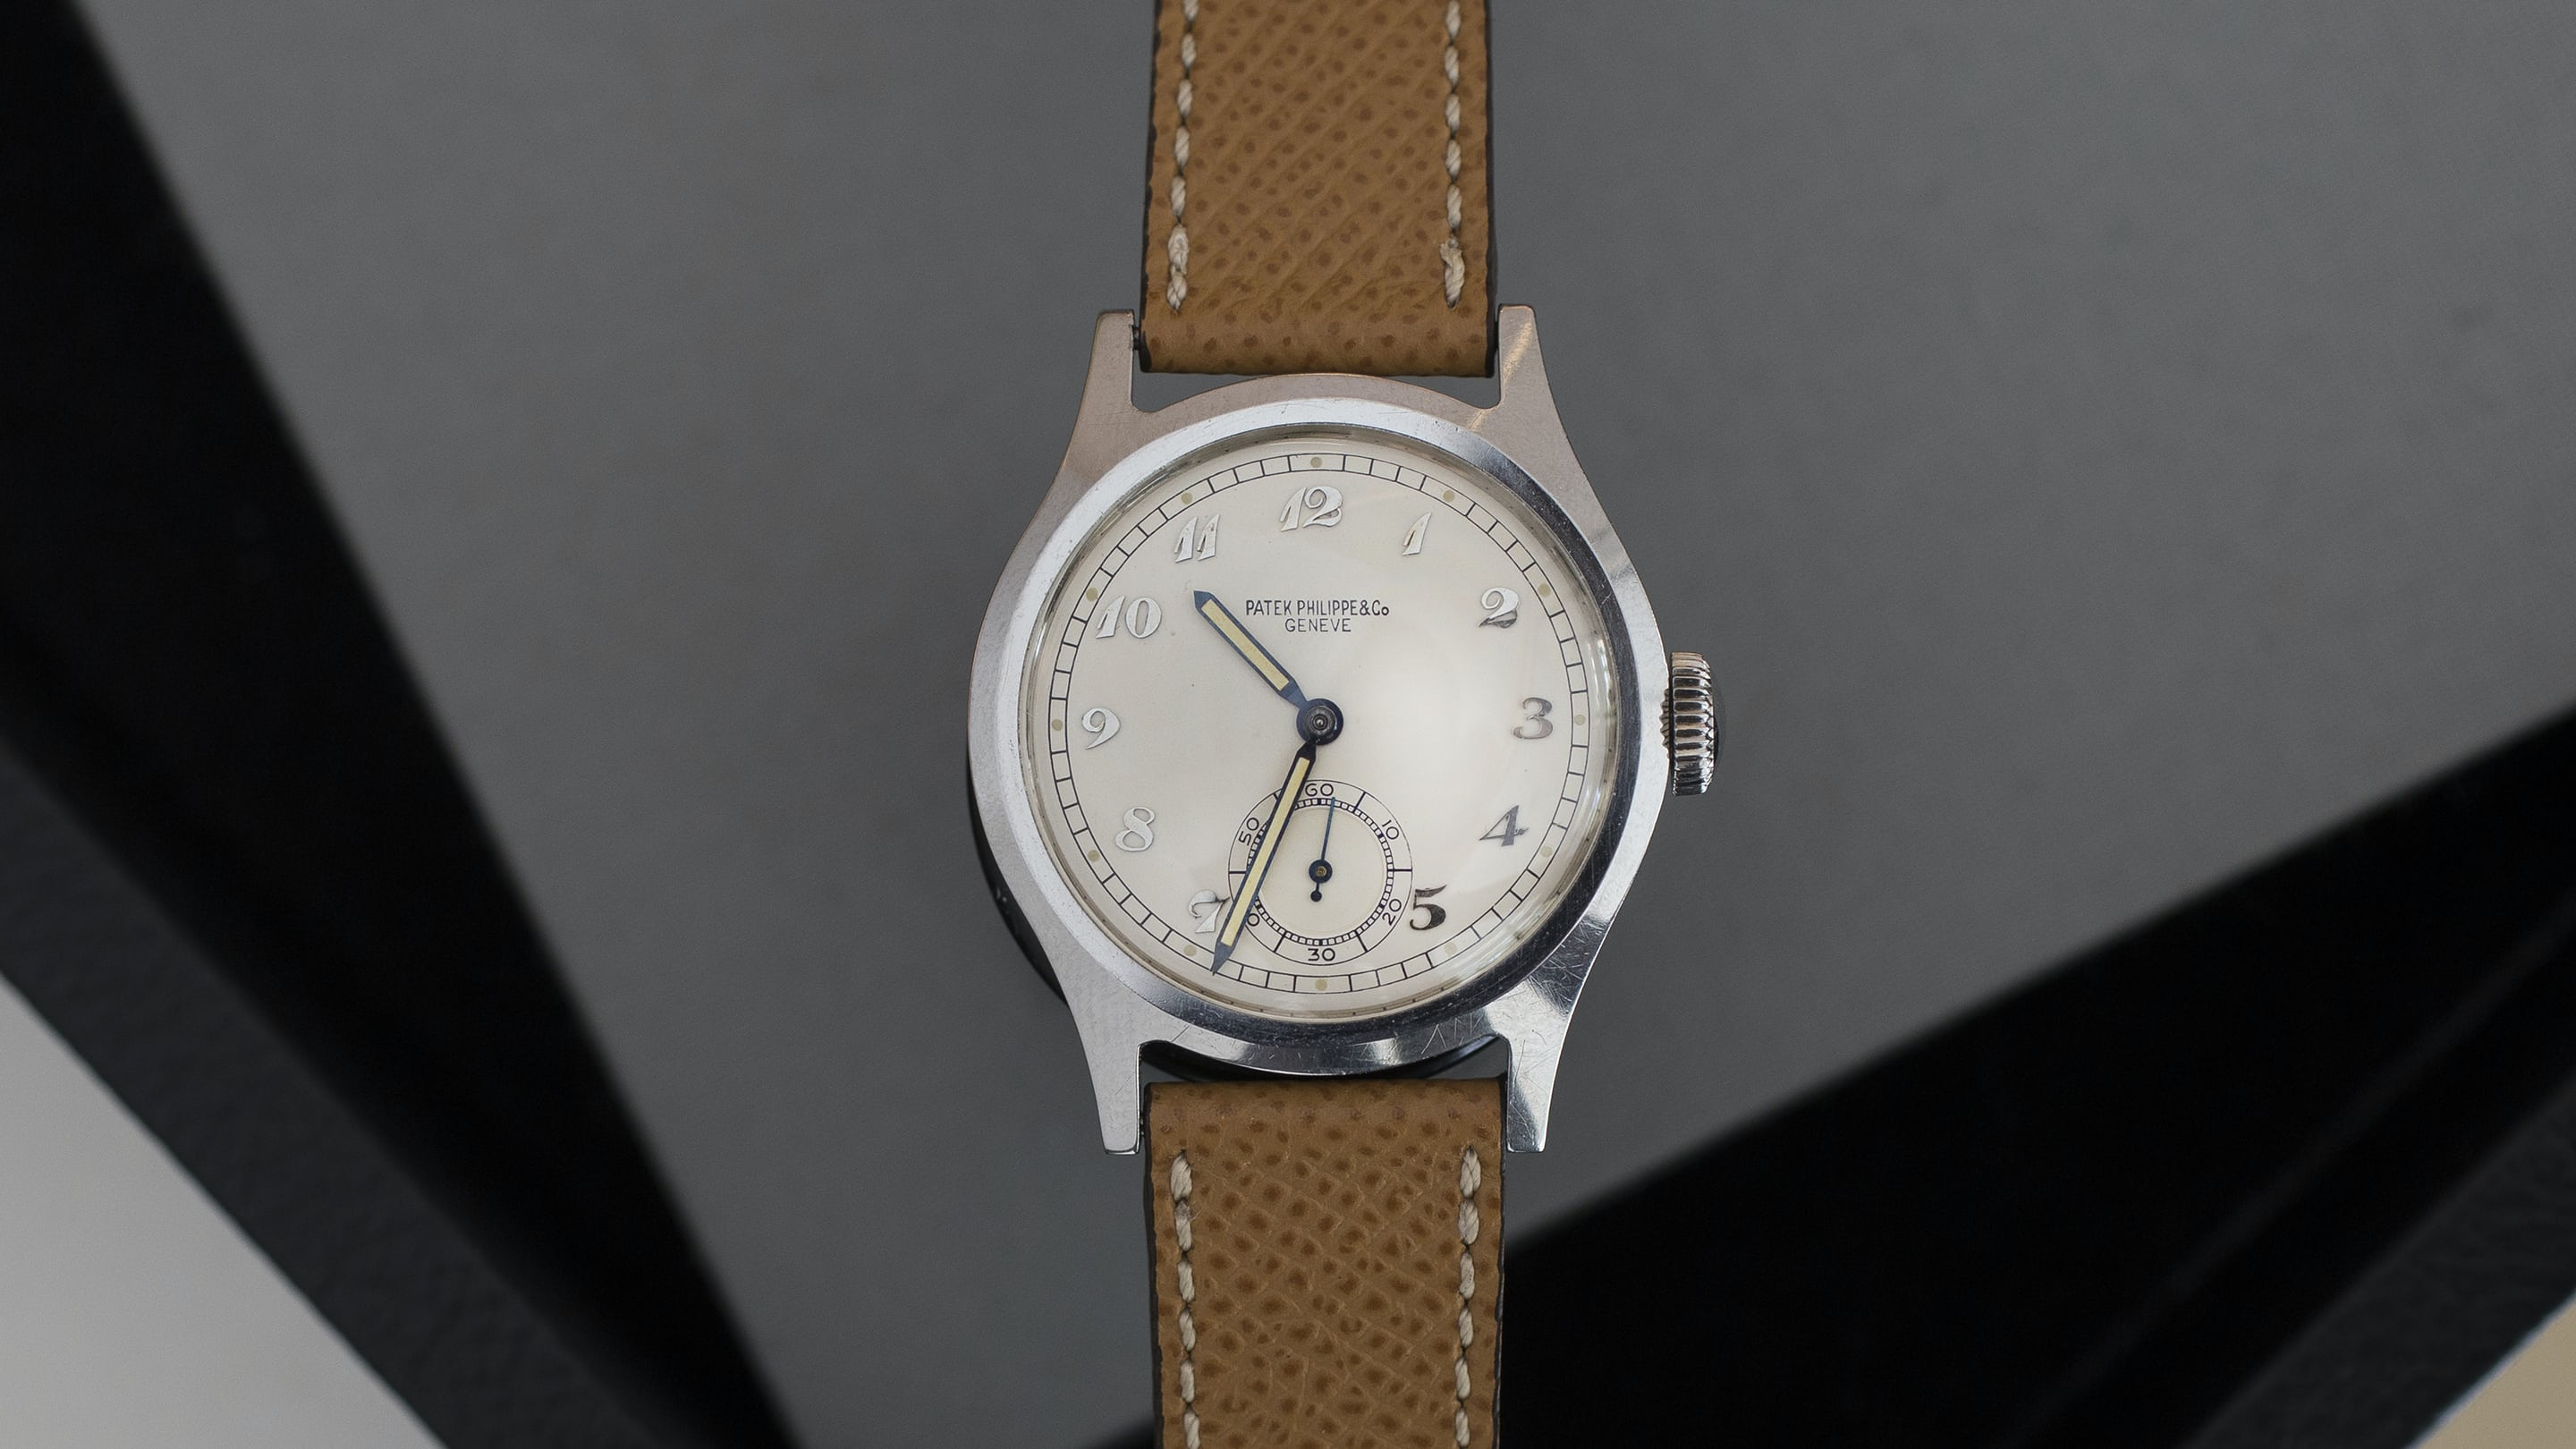 9a8e6d464eaf Auction Report  The Patek Philippe Ref. 565 With Breguet Dial For Sale At  Phillips - HODINKEE